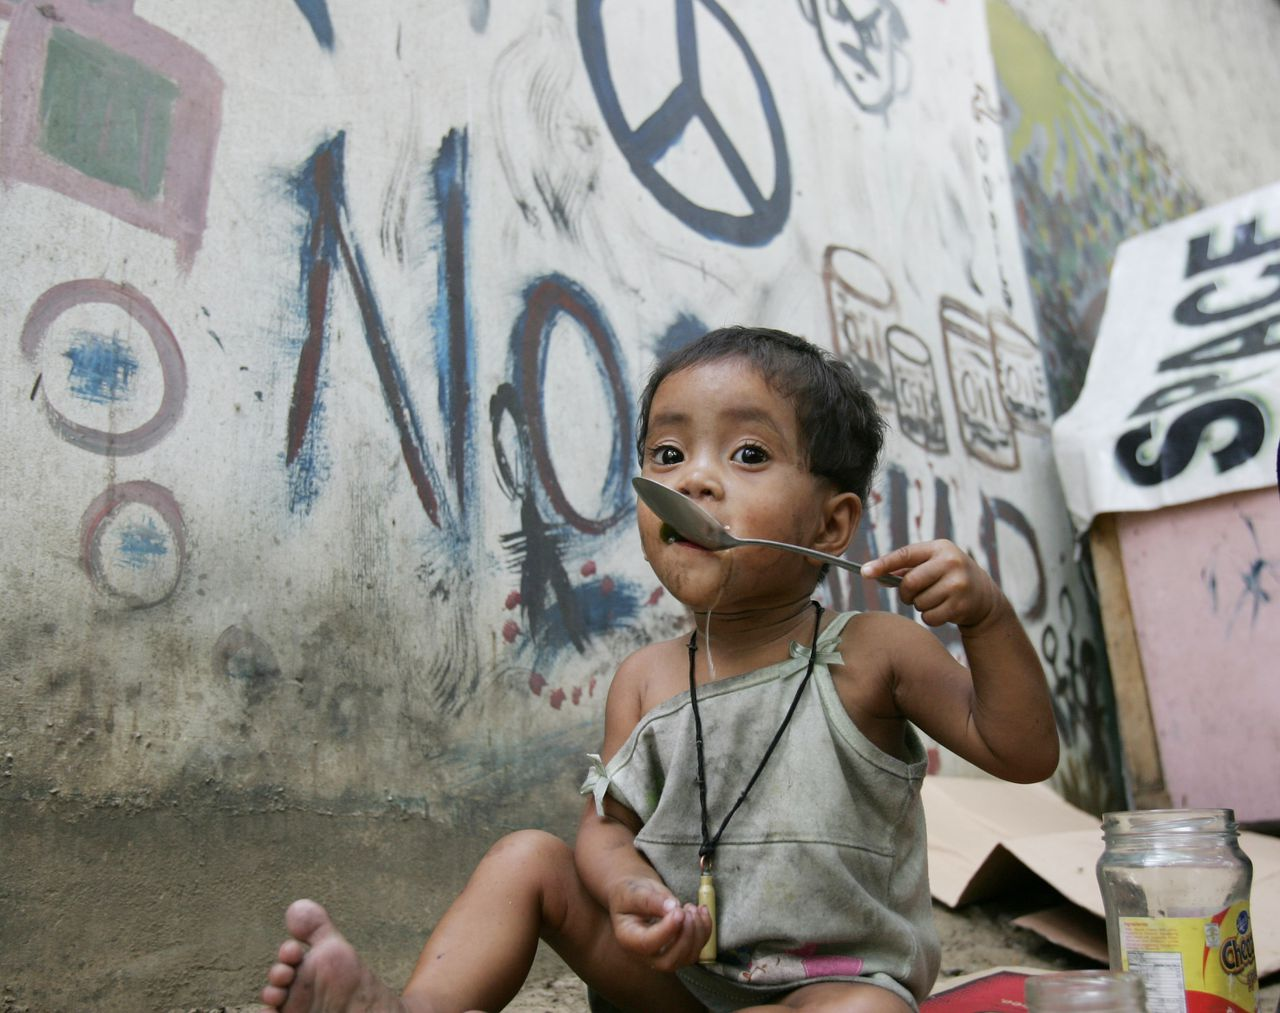 Debat over de voedselcrisis A homeless girl eats her lunch next to a wall covered with a graffiti anti-war message and a peace sign on a street in Manila's Quezon City on Friday April 18, 2008, in the Philippines. The world marks Earth Day on Tuesday April 22, 2008, but this year's theme of water protection is likely to be overshadowed by the looming food and rice crisis. (AP Photo/Bullit Marquez)